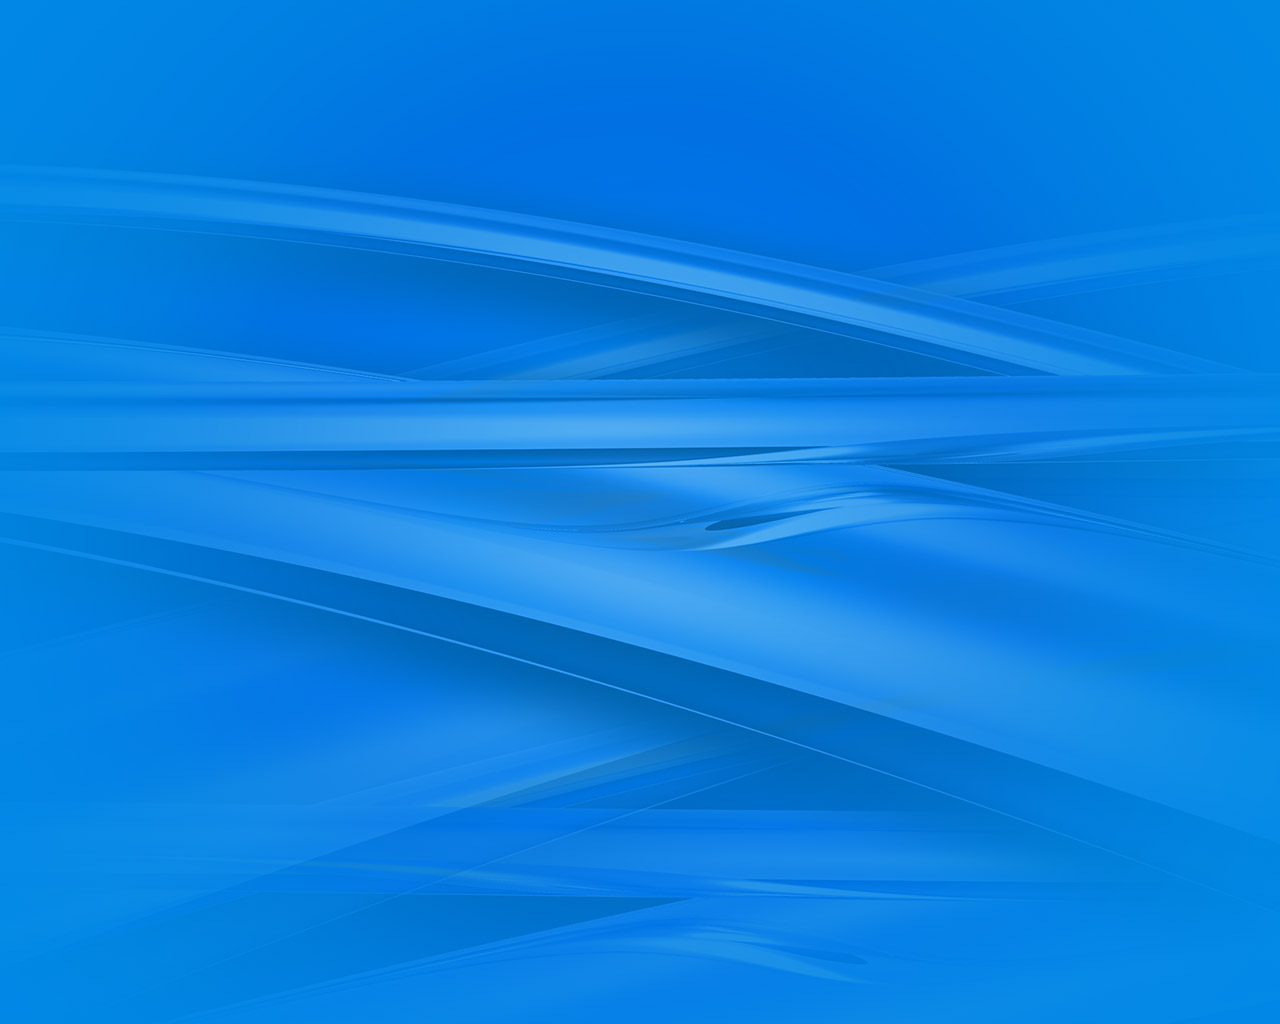 Soft Blue Background Texture